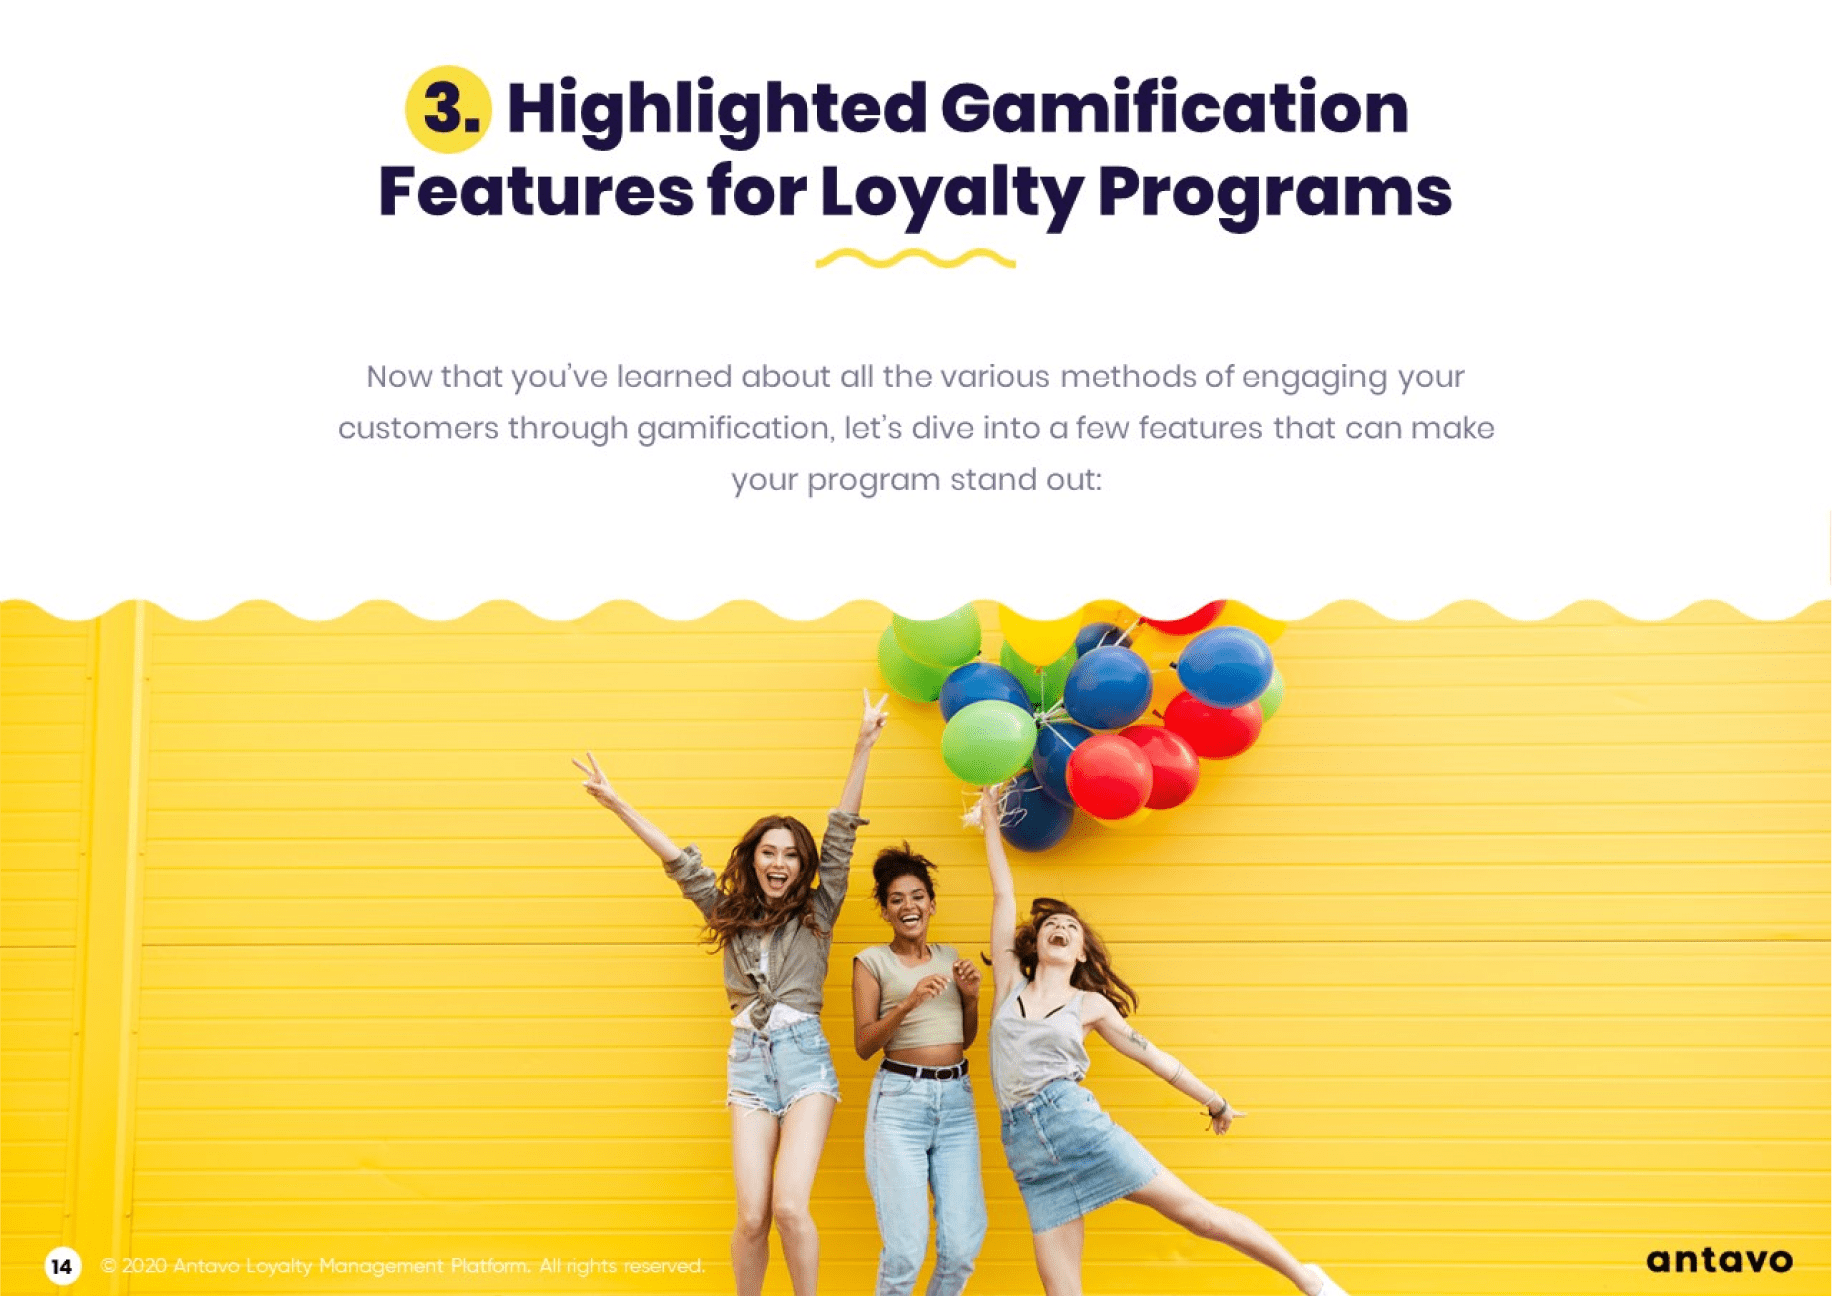 Antavo's Ebook: Best Practices for Gamification in Loyalty Programs - Highlighted gamification features for loyalty programs.